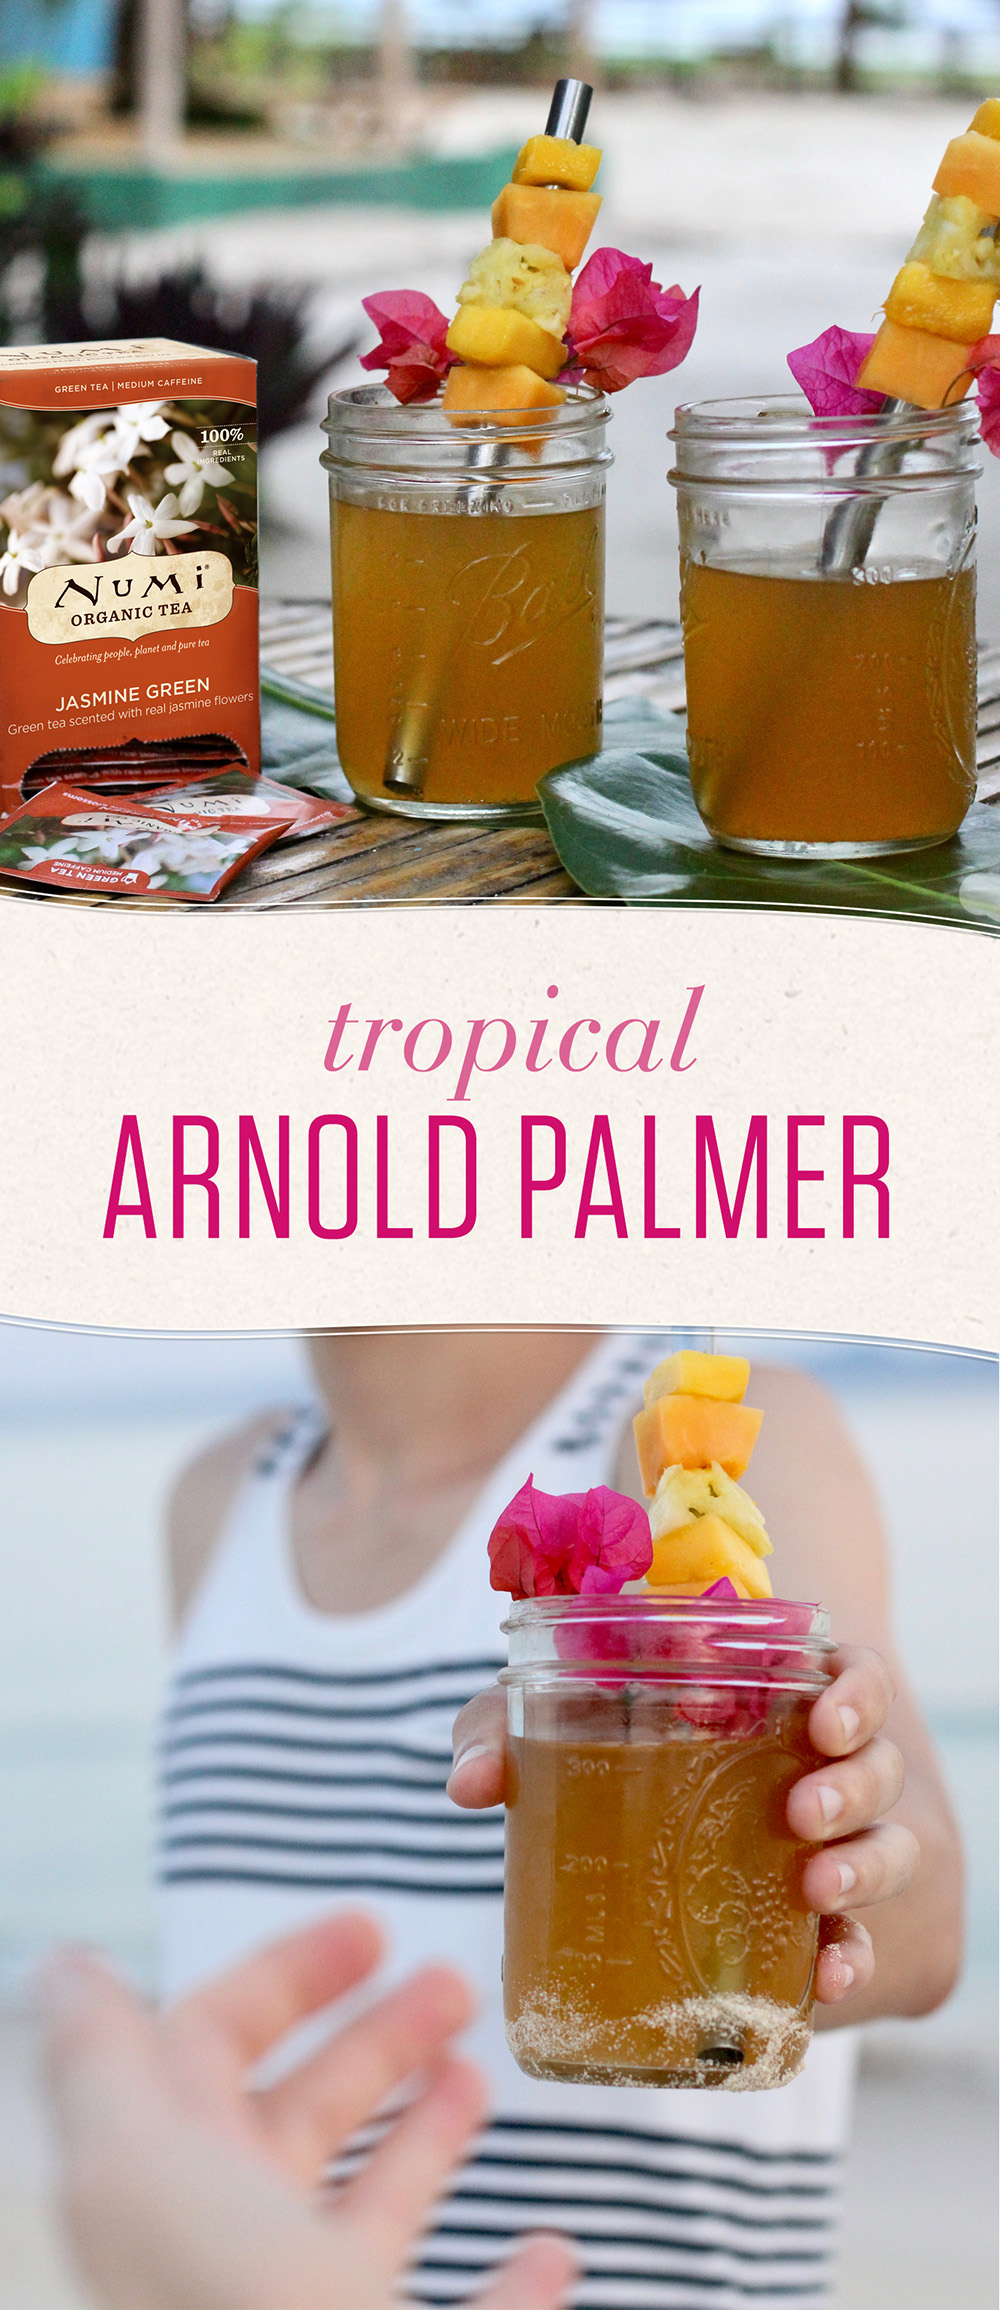 Floral, fruity, sweet. This tropical spin on the classic Arnold Palmer is your new beach day go-to for hydration and happiness.